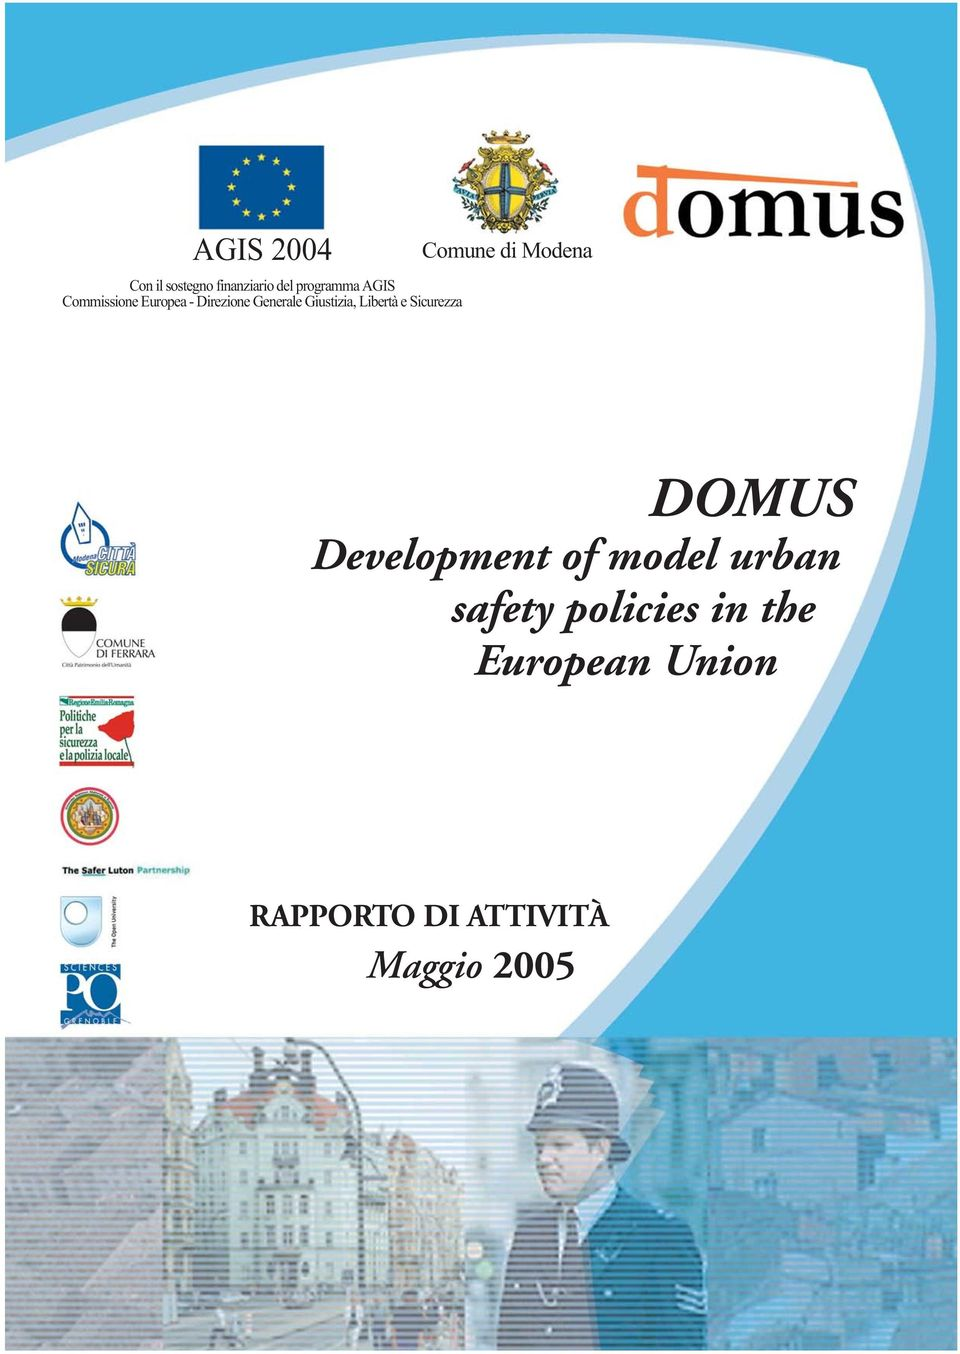 Sicurezza Comune di Modena DOMUS Development of model urban